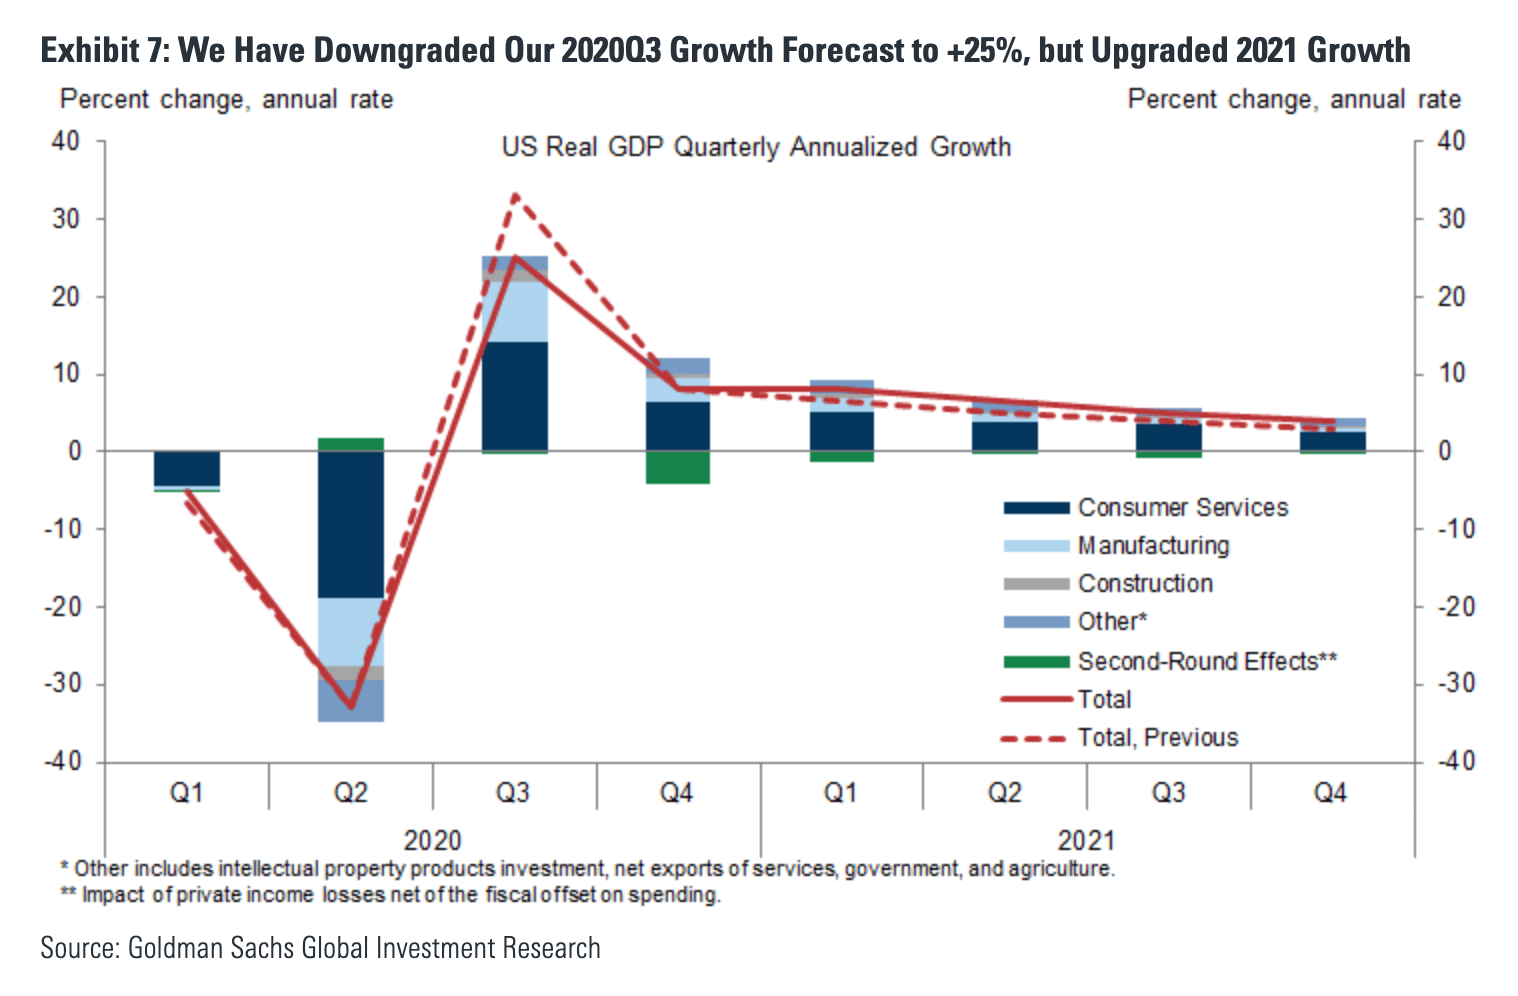 Goldman Sachs downgrades 3Q 2020 GDP and upgrades 2020 GDP - The Basis Point